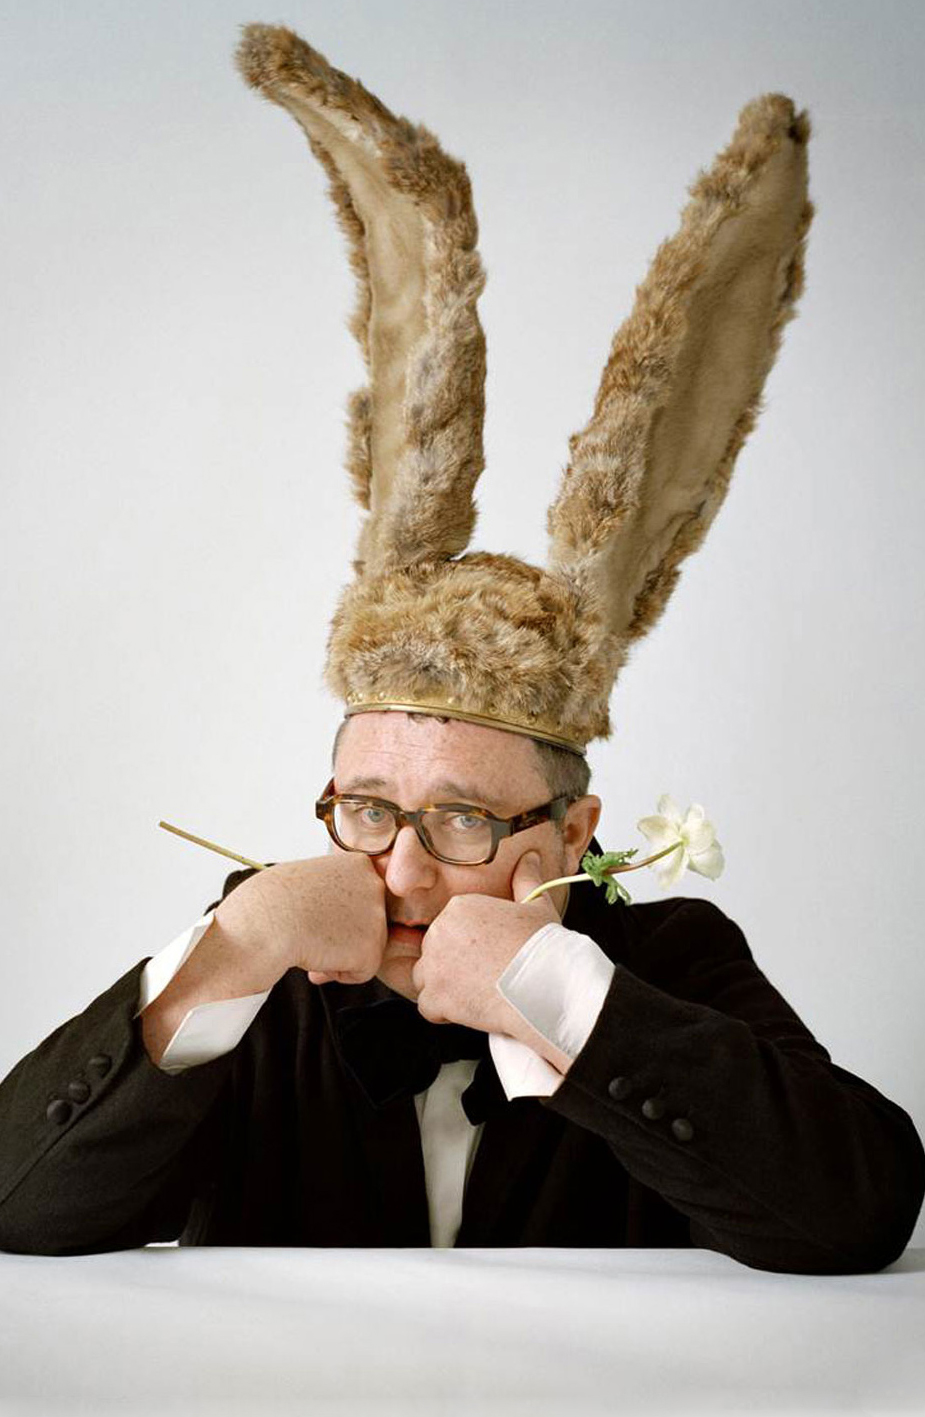 Alber Elbaz photographed by Tim Walker for Vogue / Alber Elbaz Interview for Observer via www.fashionedbylove.co.uk